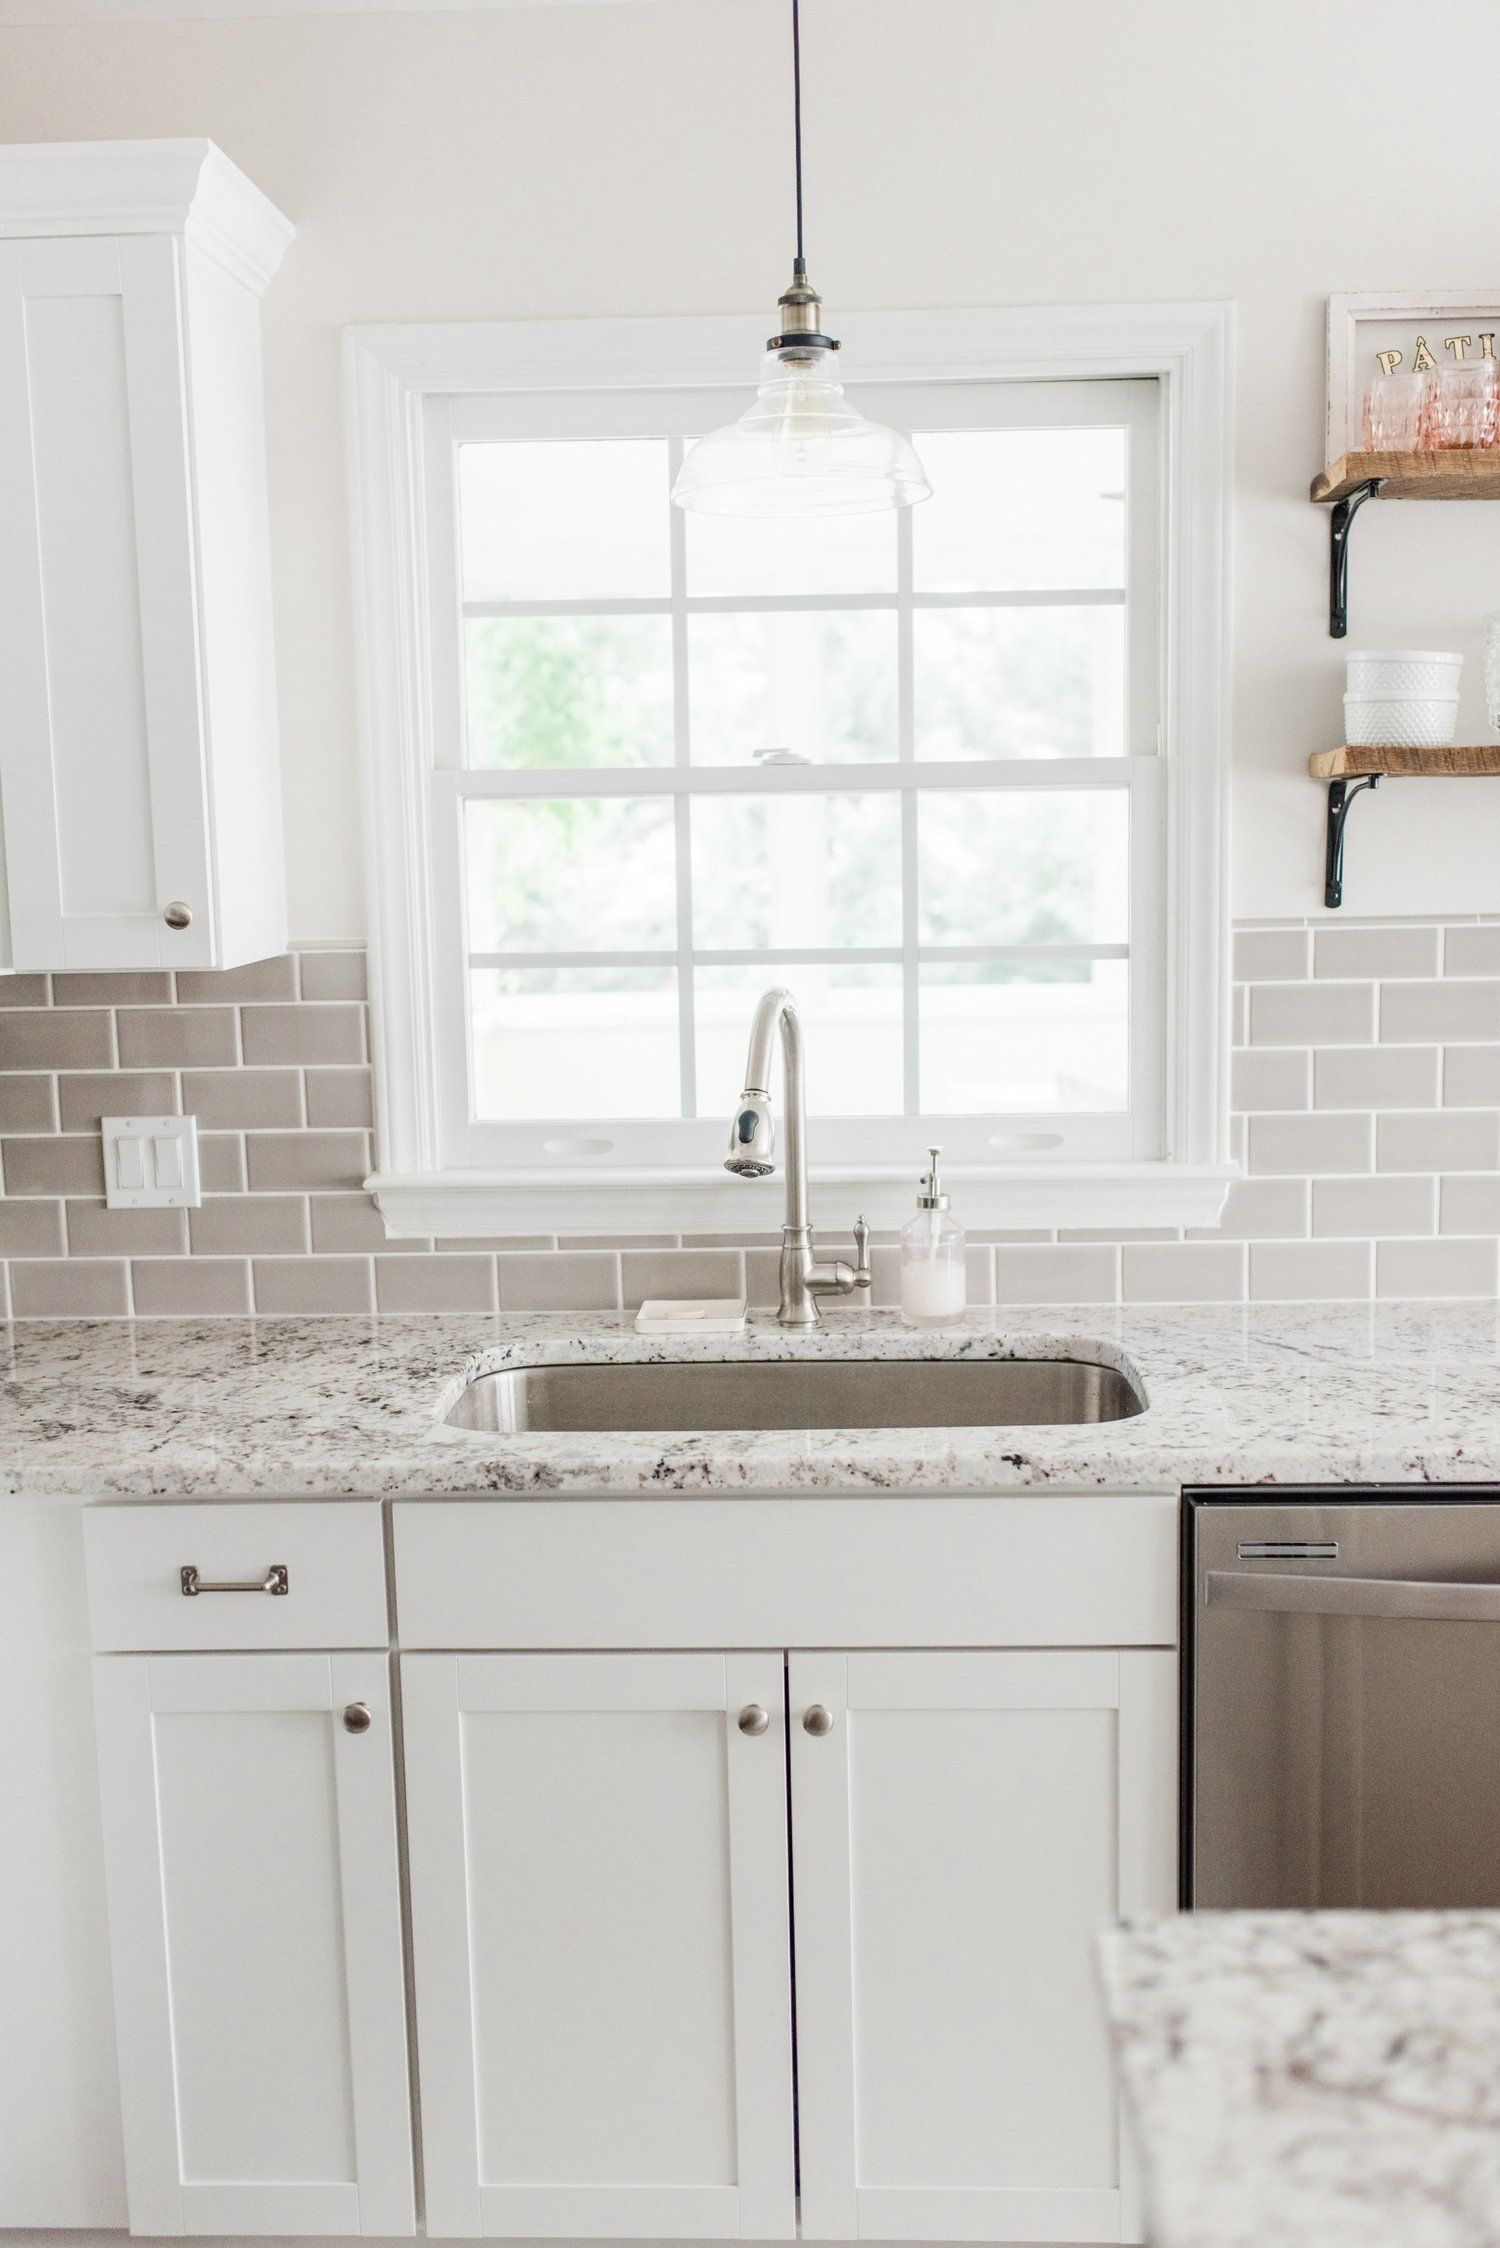 Lowe's Stock Review White shaker kitchen